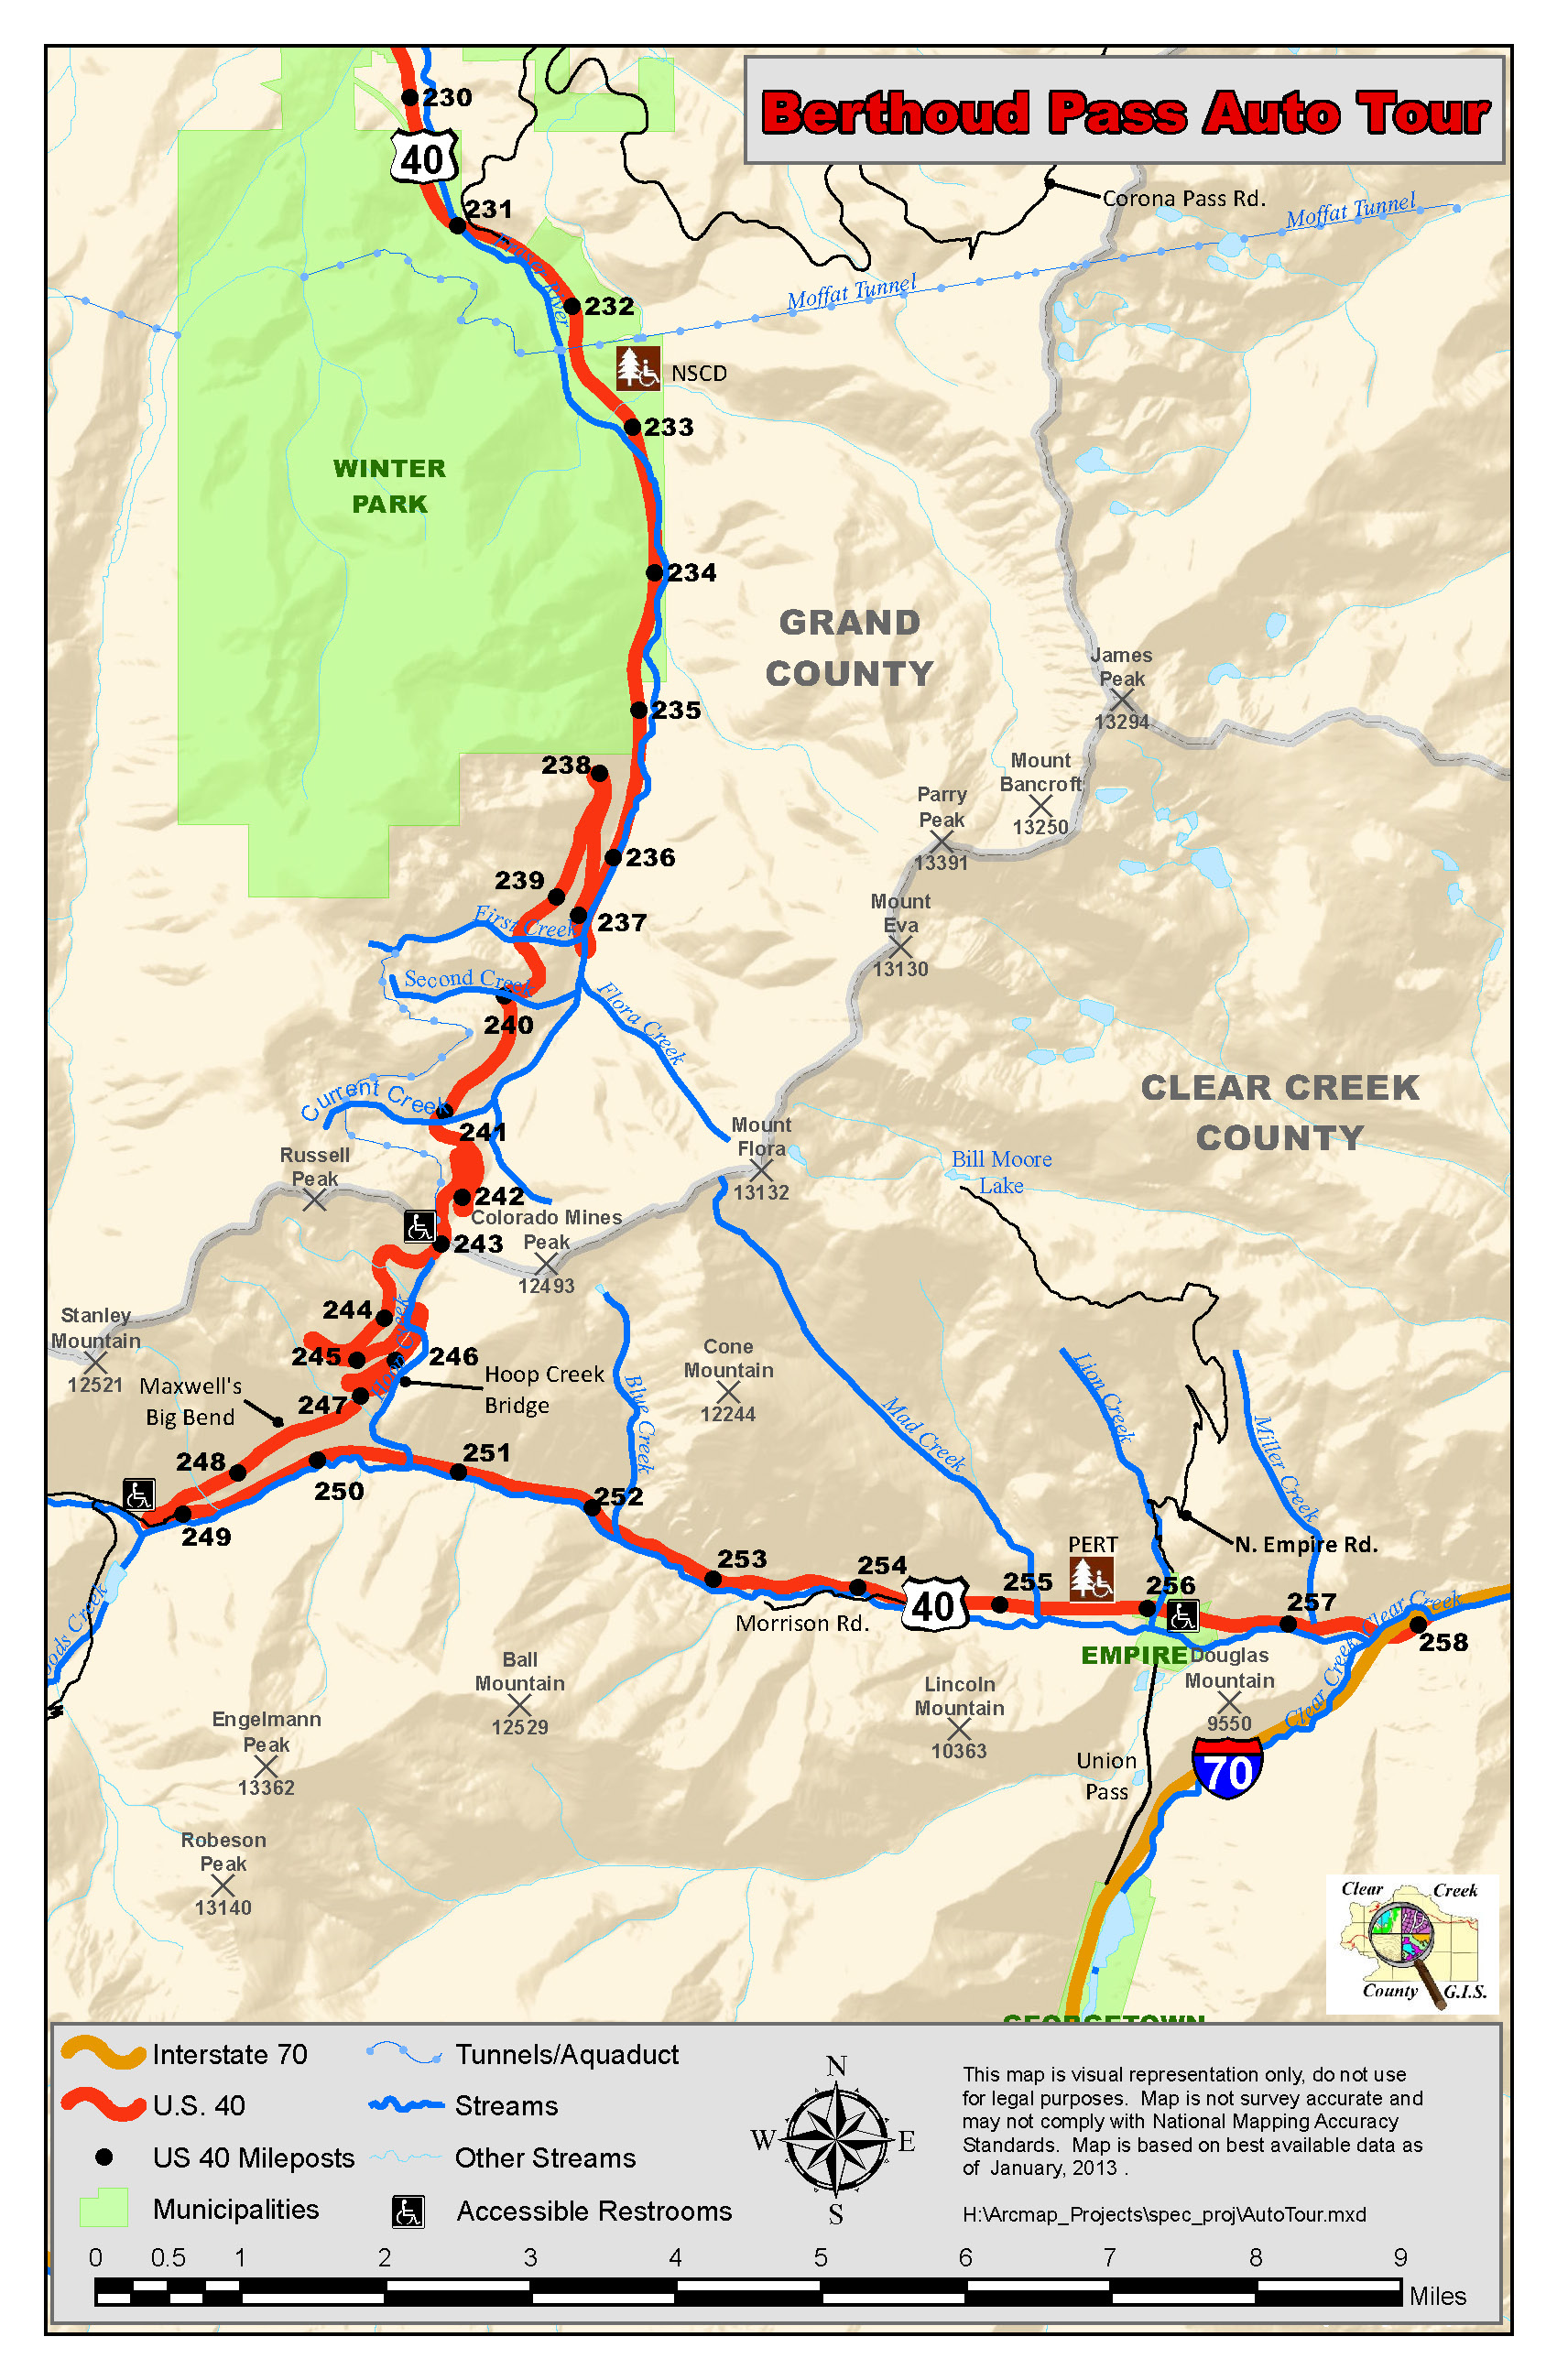 Clear Creek County Co Official Website Berthoud Pass Auto Tour - Us-highway-40-map